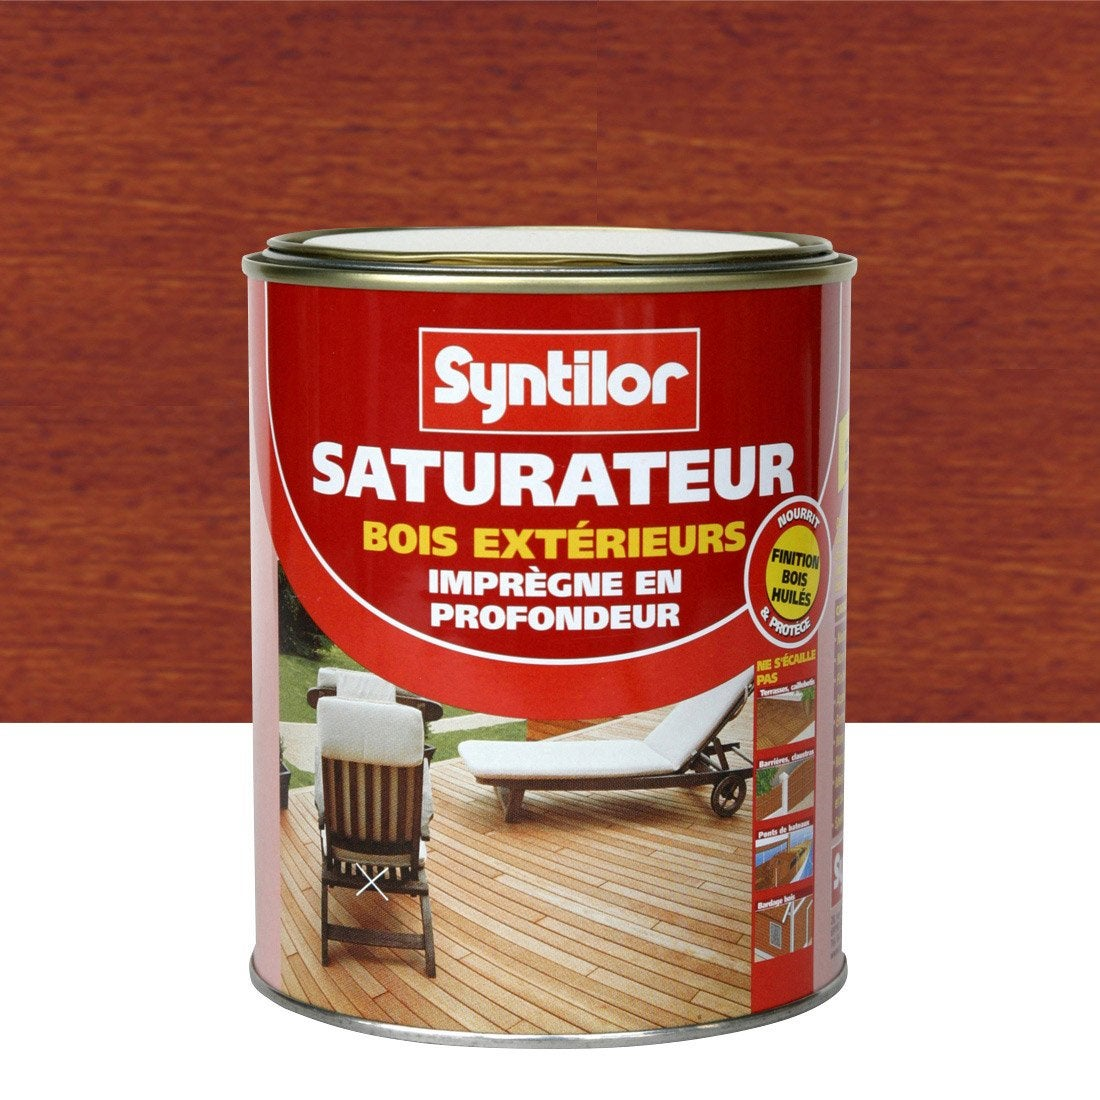 Saturateur SYNTILOR 1 l, bois exotique Leroy Merlin # Saturateur Bois Leroy Merlin